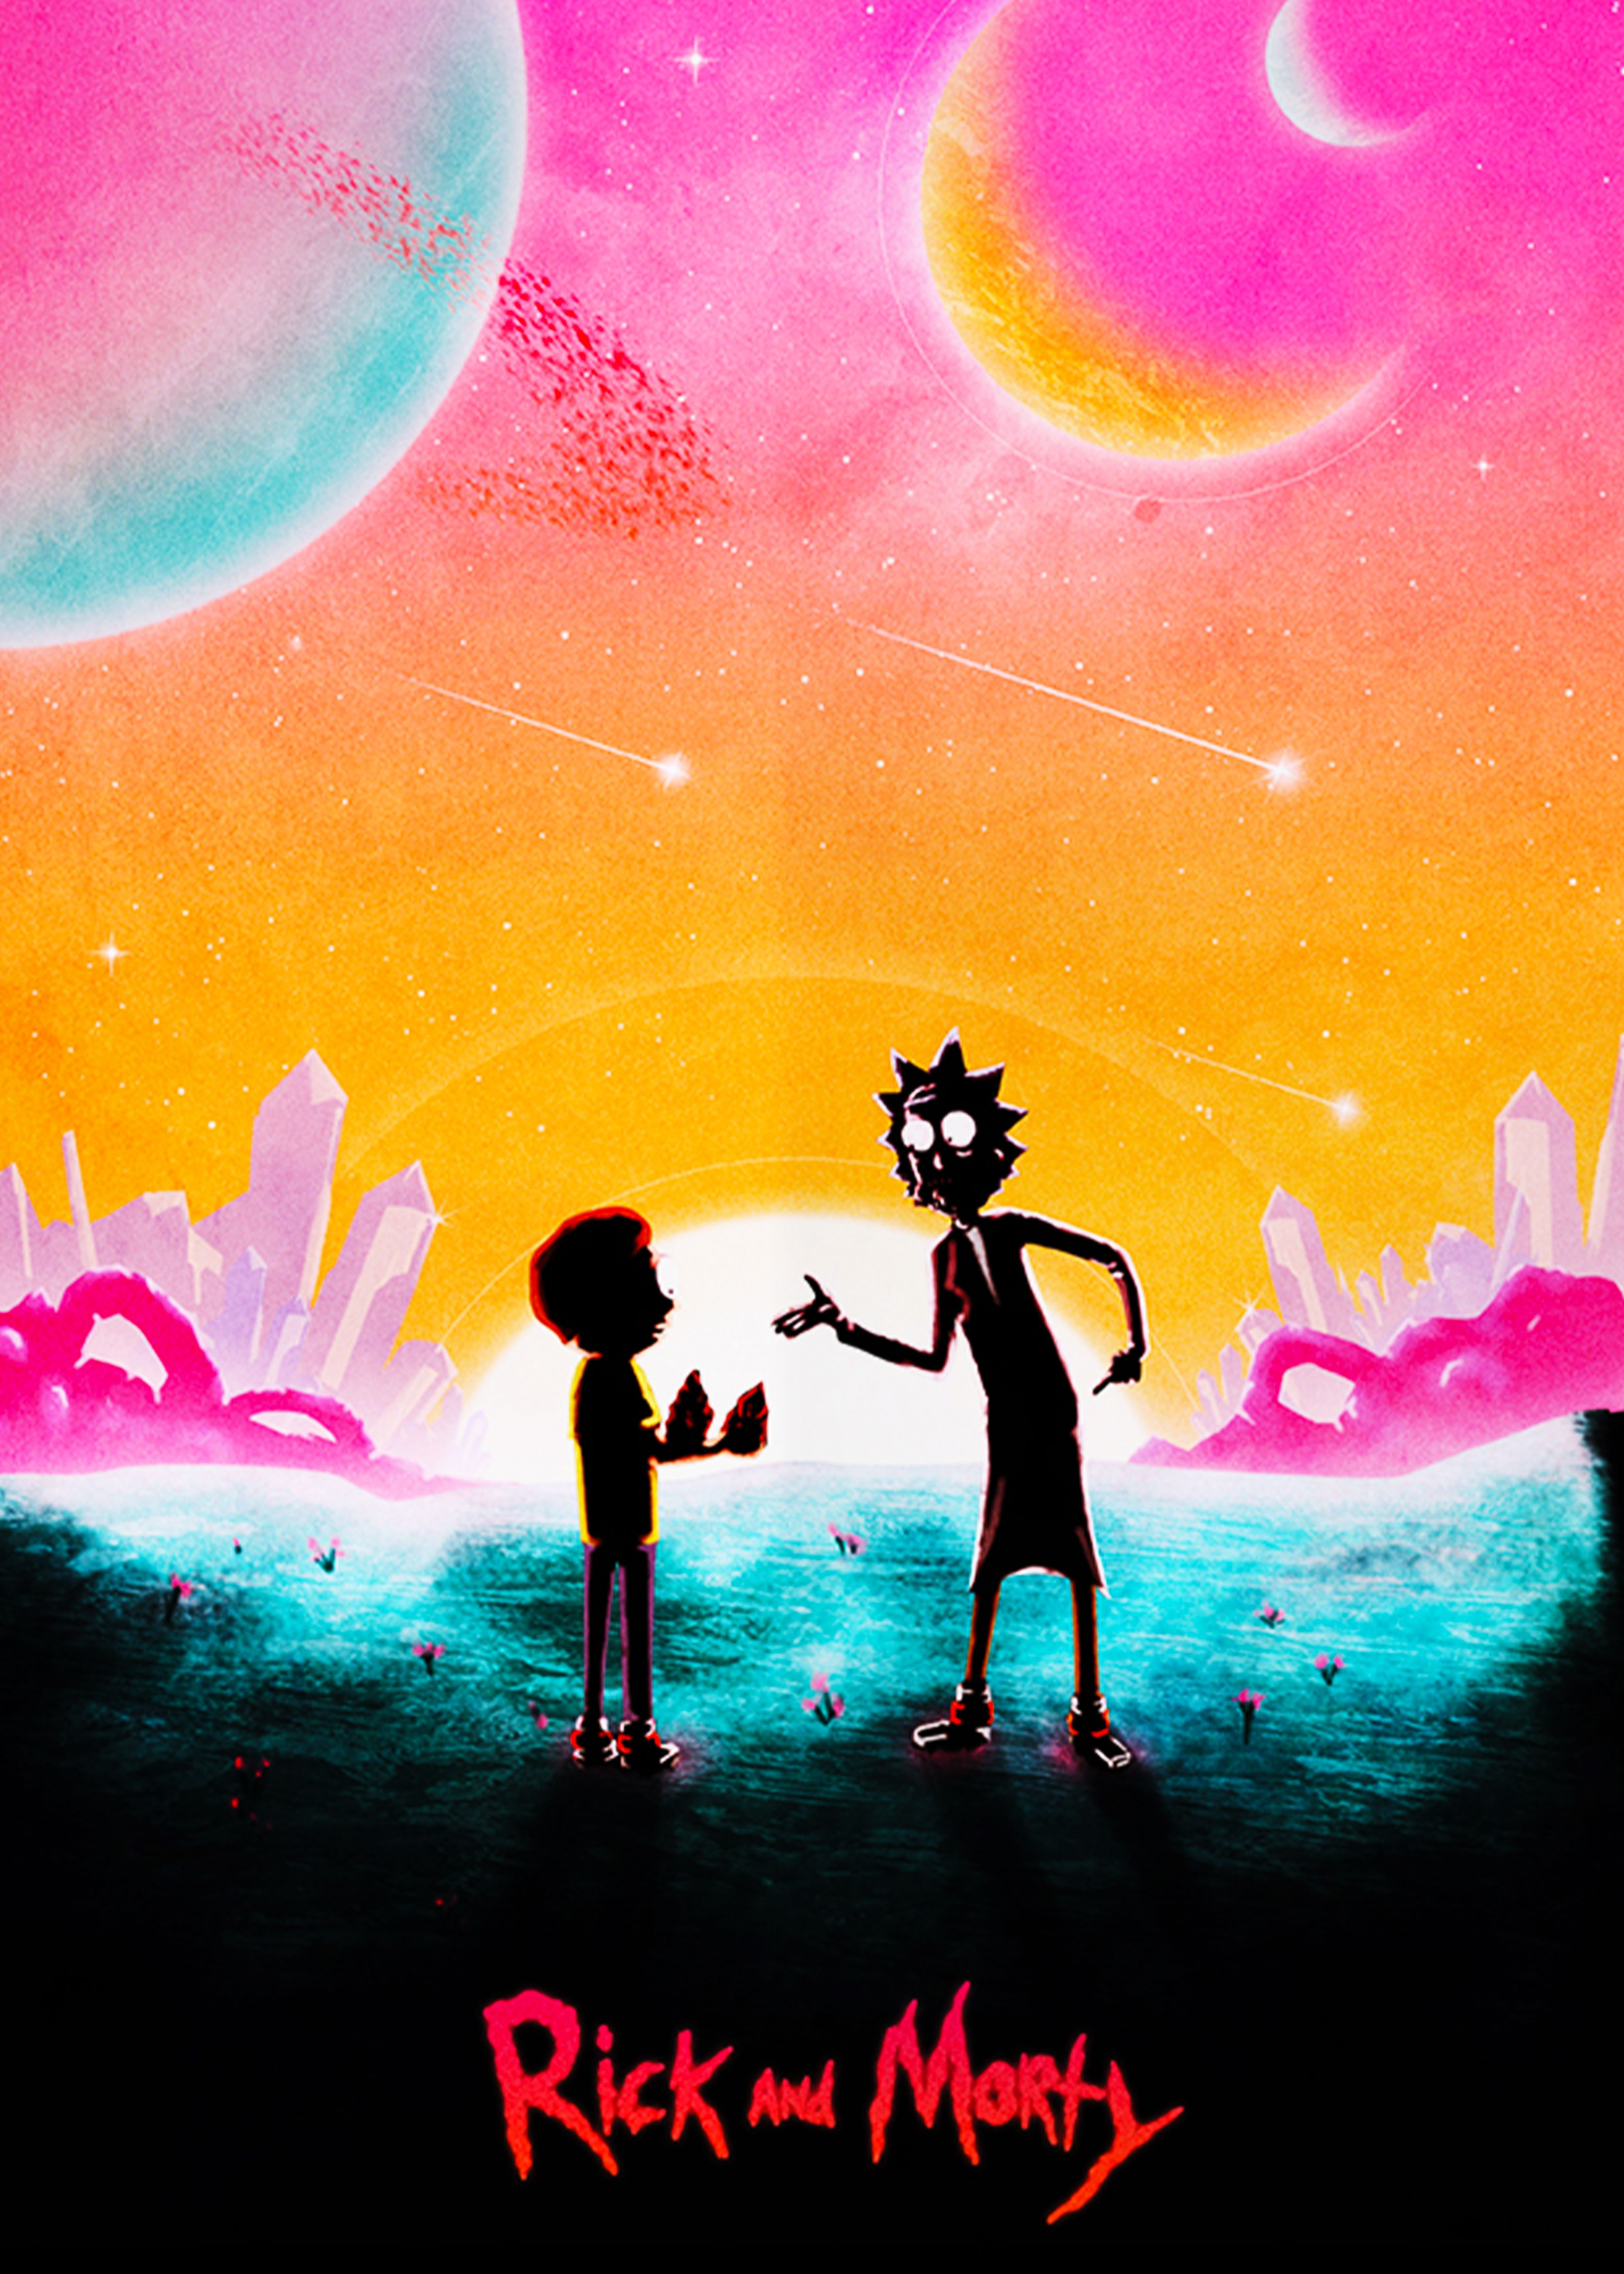 Rick And Morty On Planet Poster In 2021 Rick And Morty Poster Rick And Morty Trippy Aesthetic